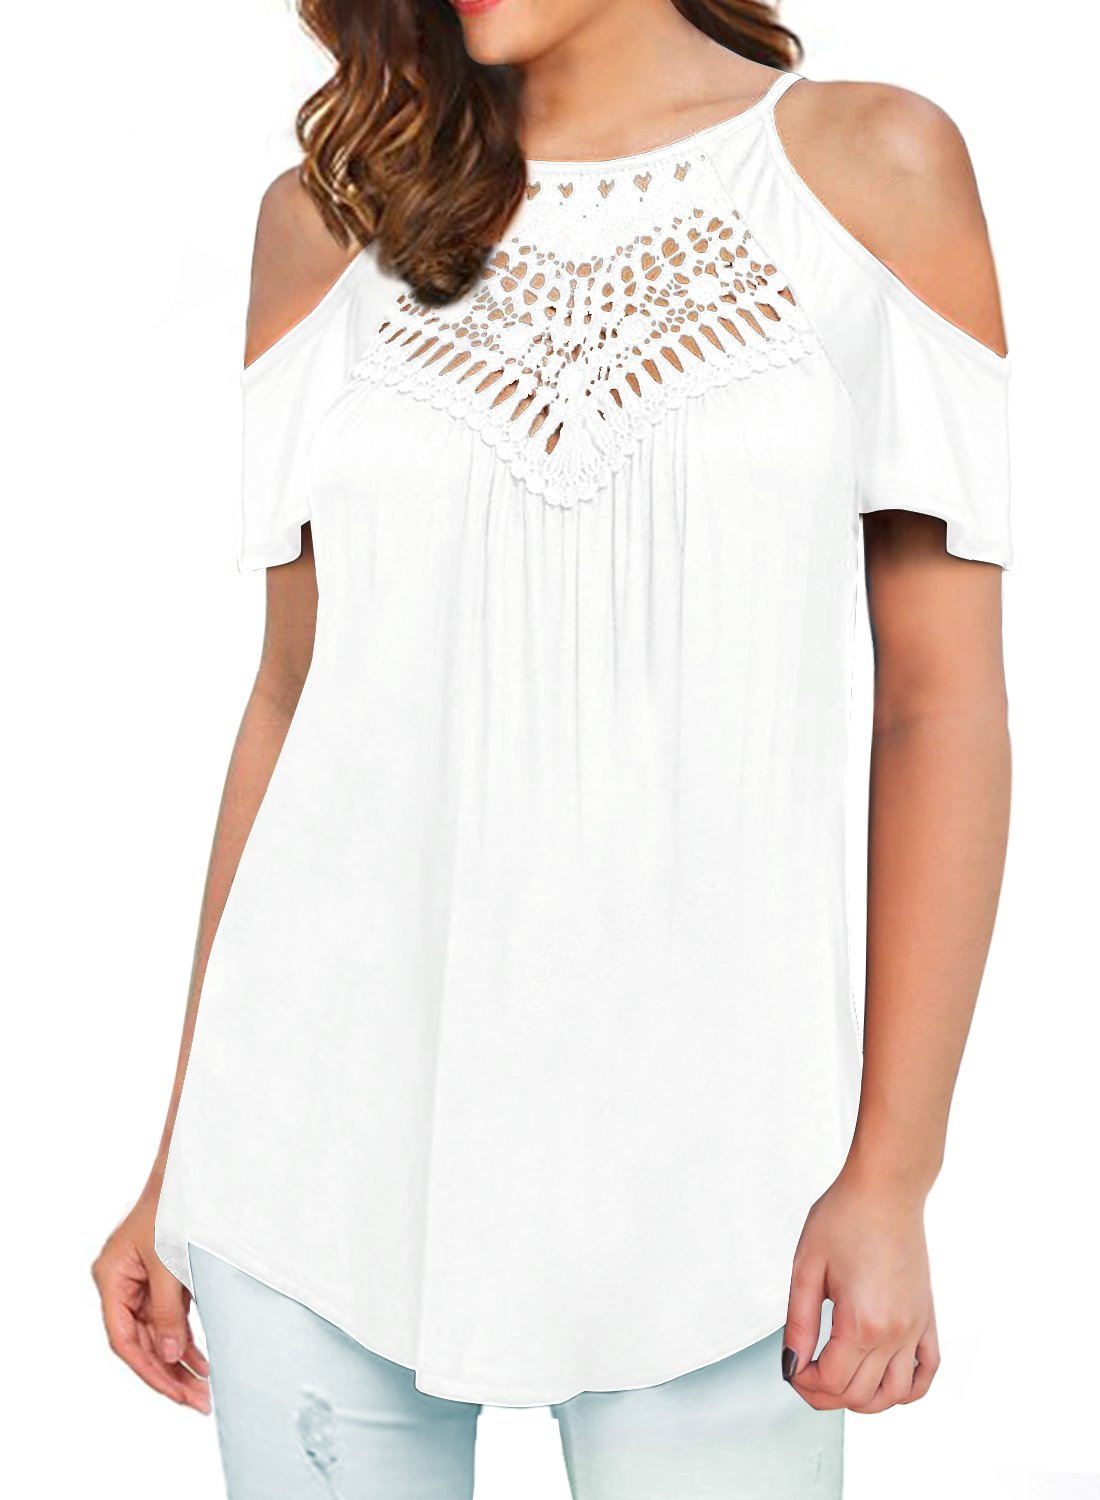 MIHOLL Womens Summer Casual Short Sleeve Tops Lace Flowy Loose Shirts Tank Tops (Z- White, Small)